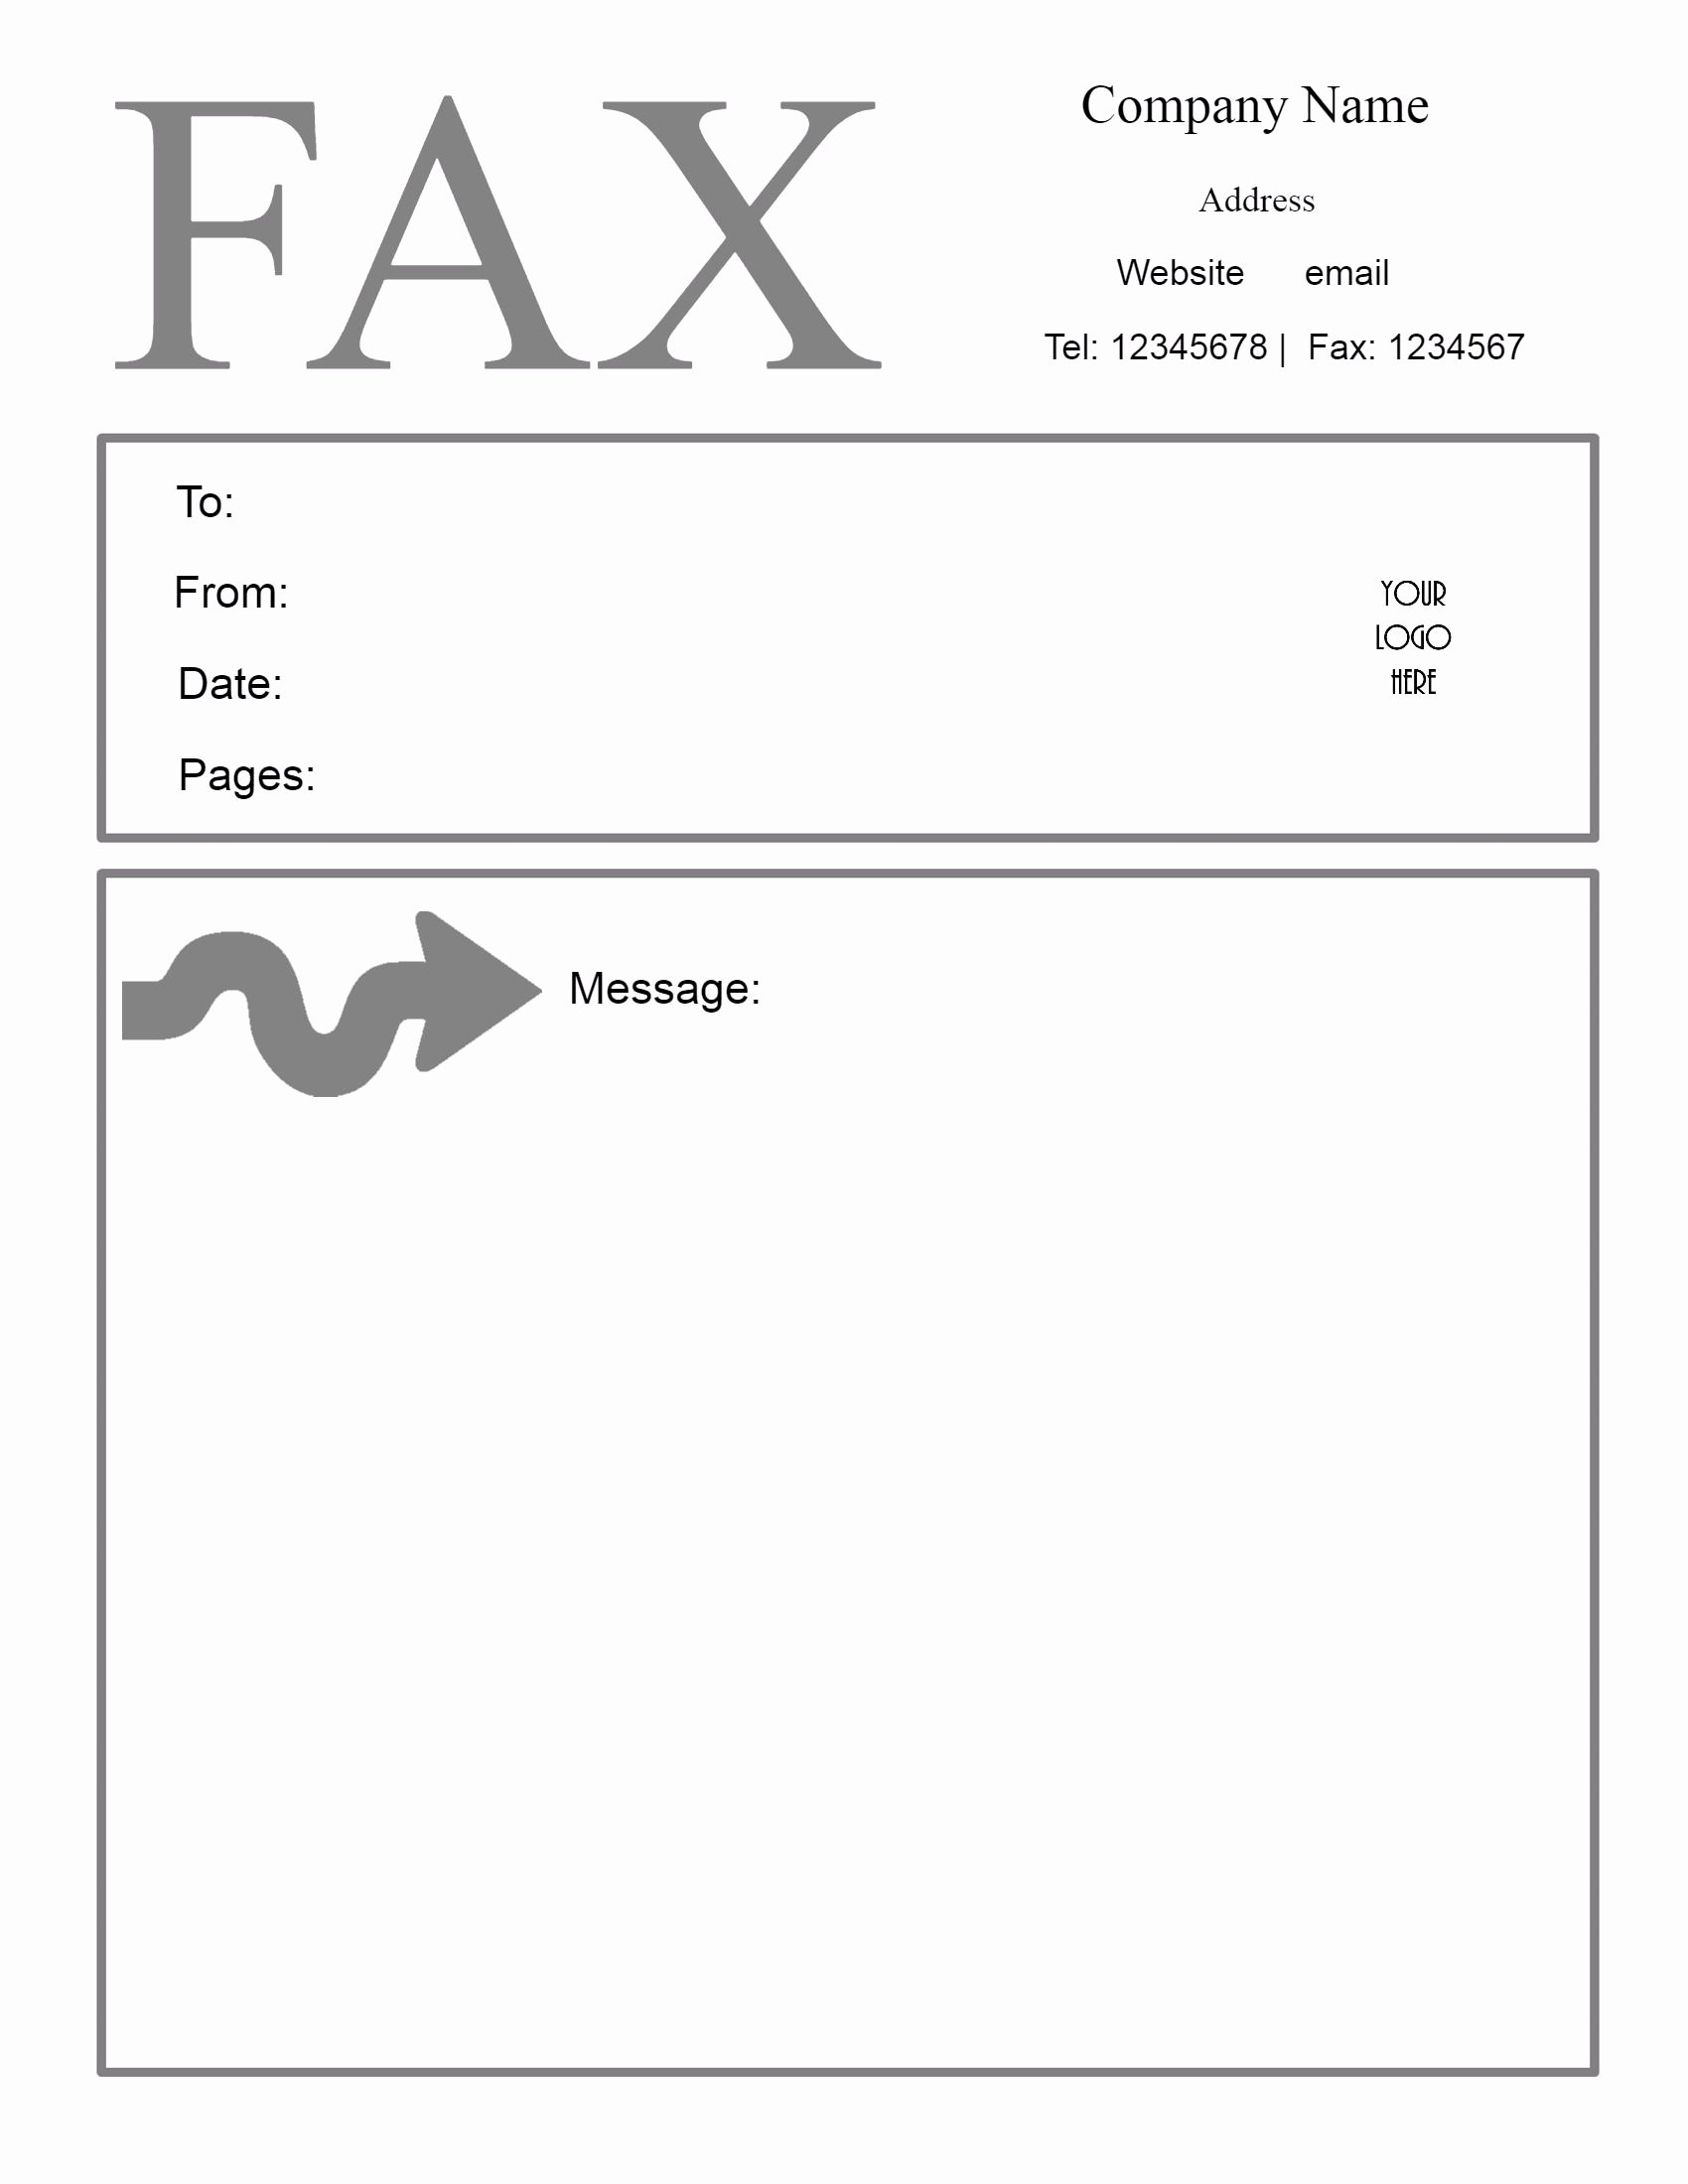 Printable Fax Cover Sheet Lovely Free Fax Cover Sheet Template